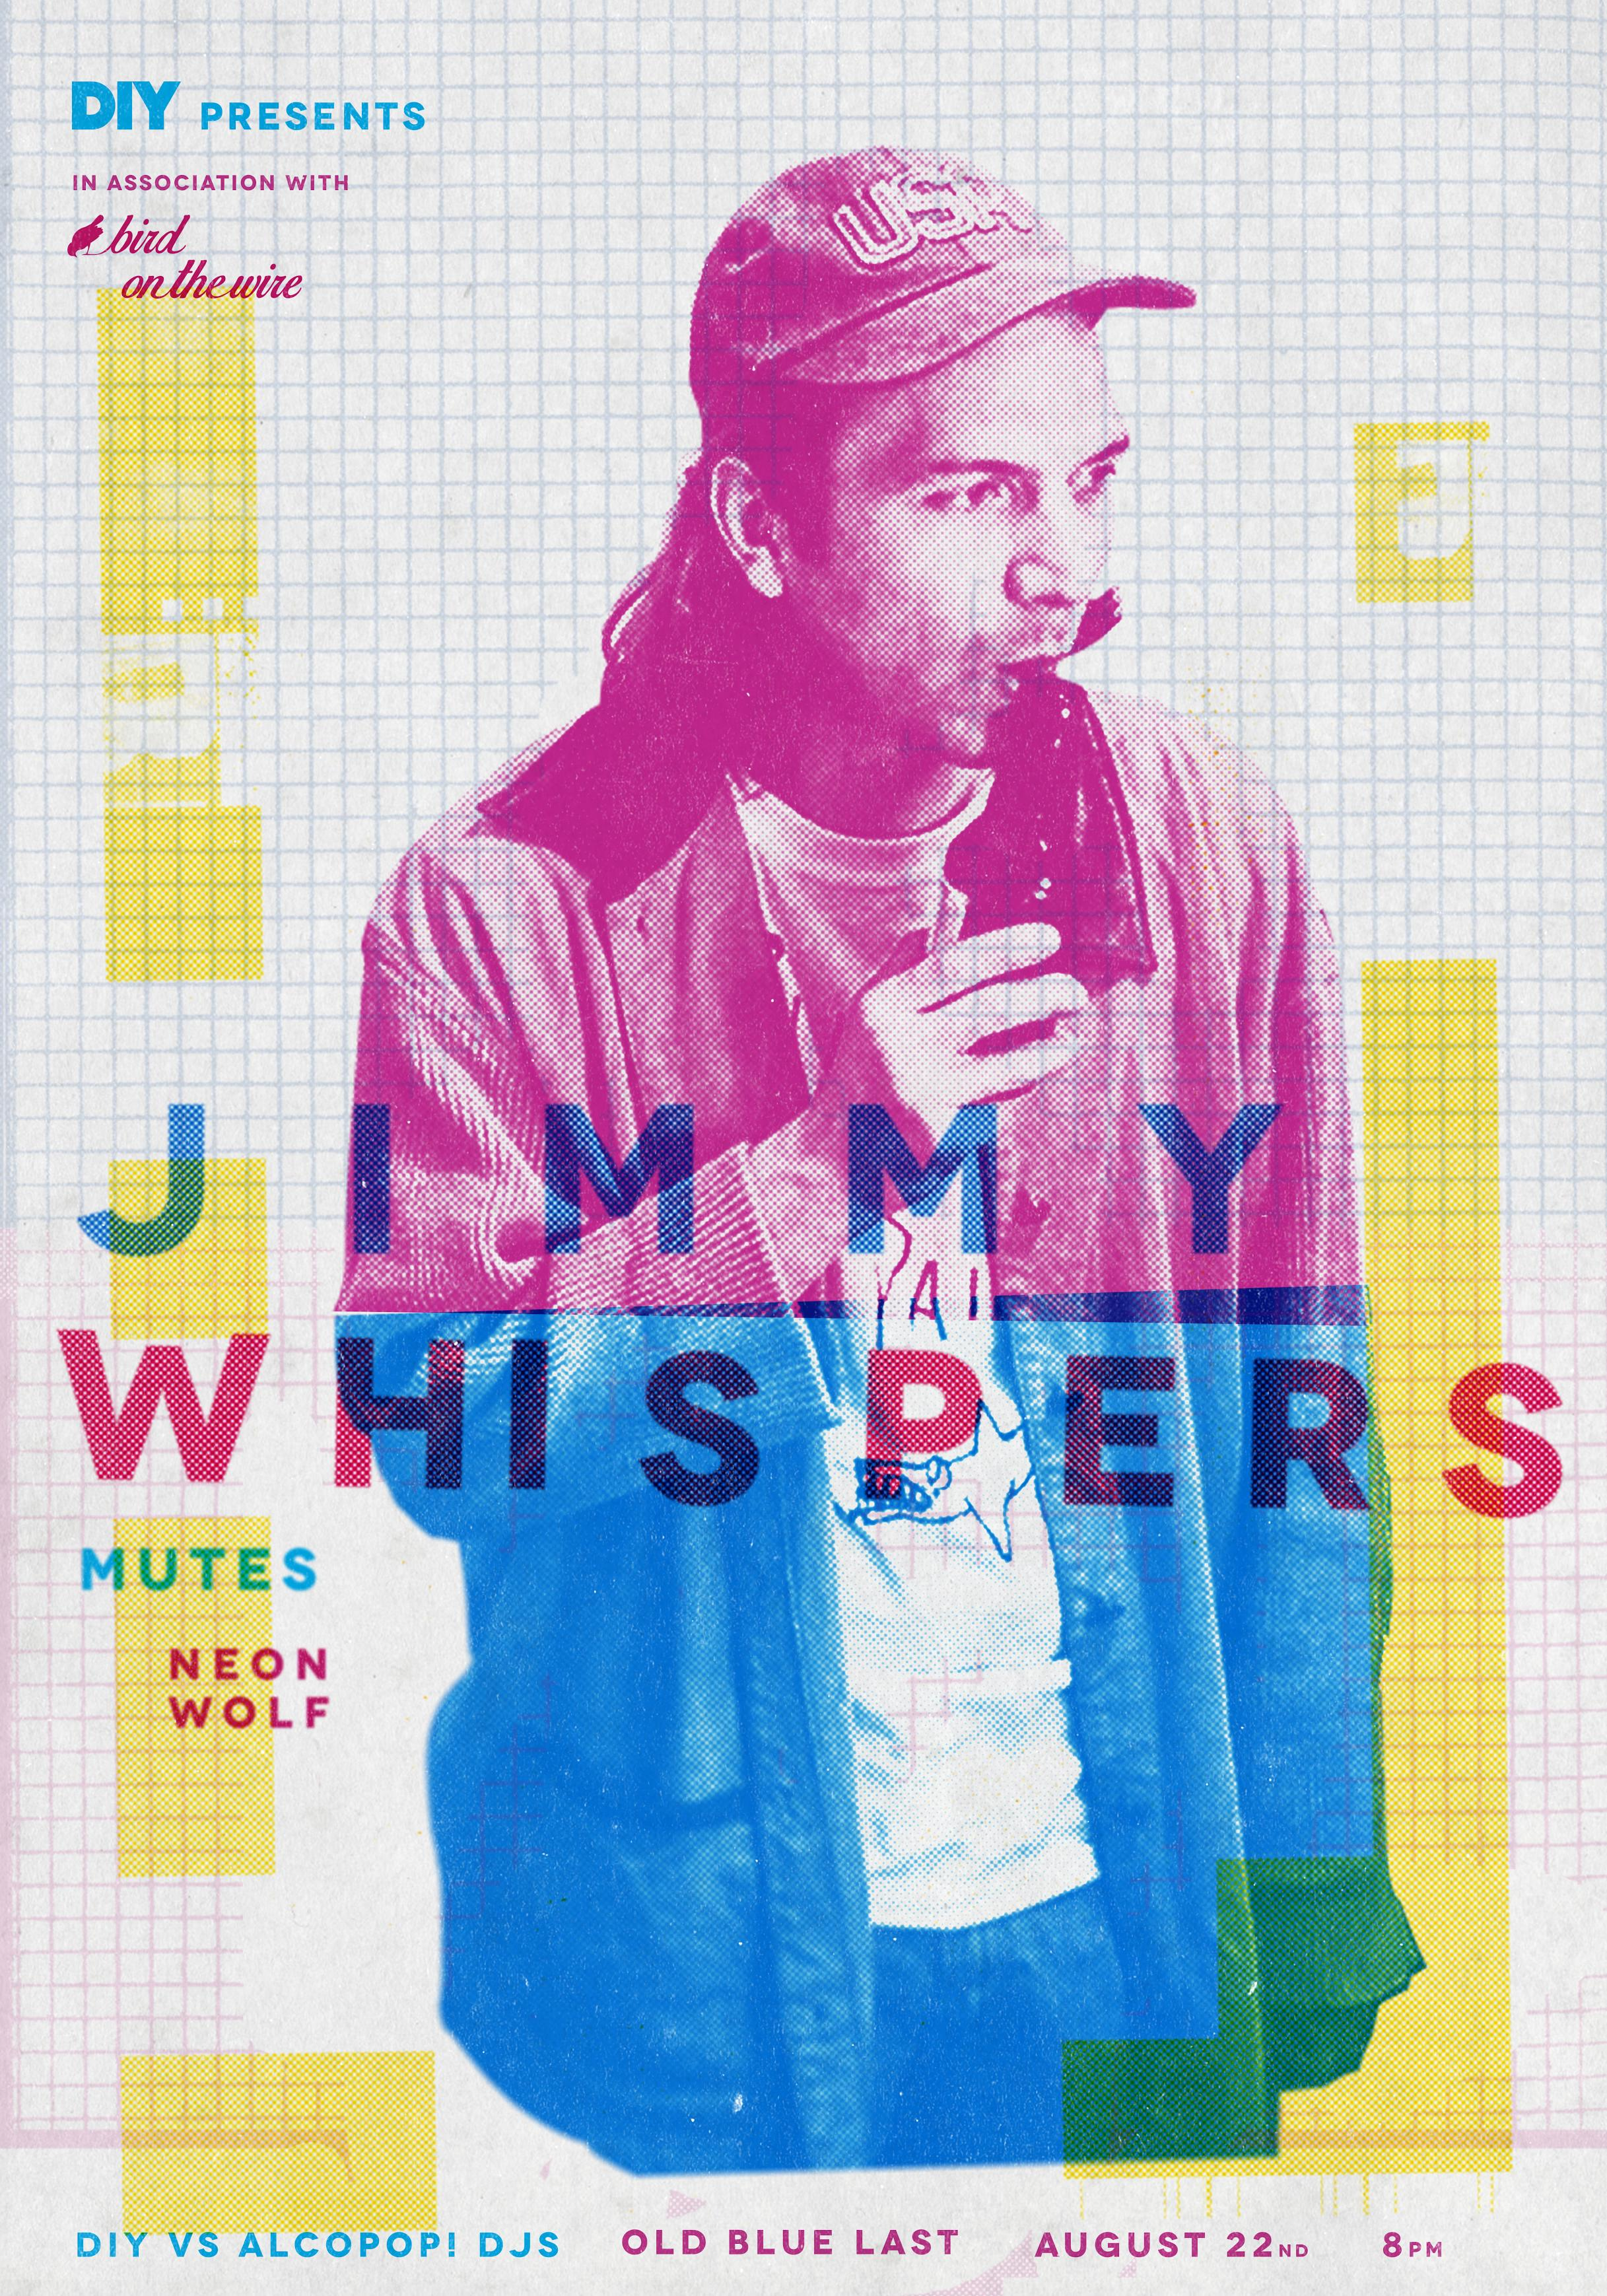 Giggling fits and iPhone recordings - the mad world of Jimmy Whispers